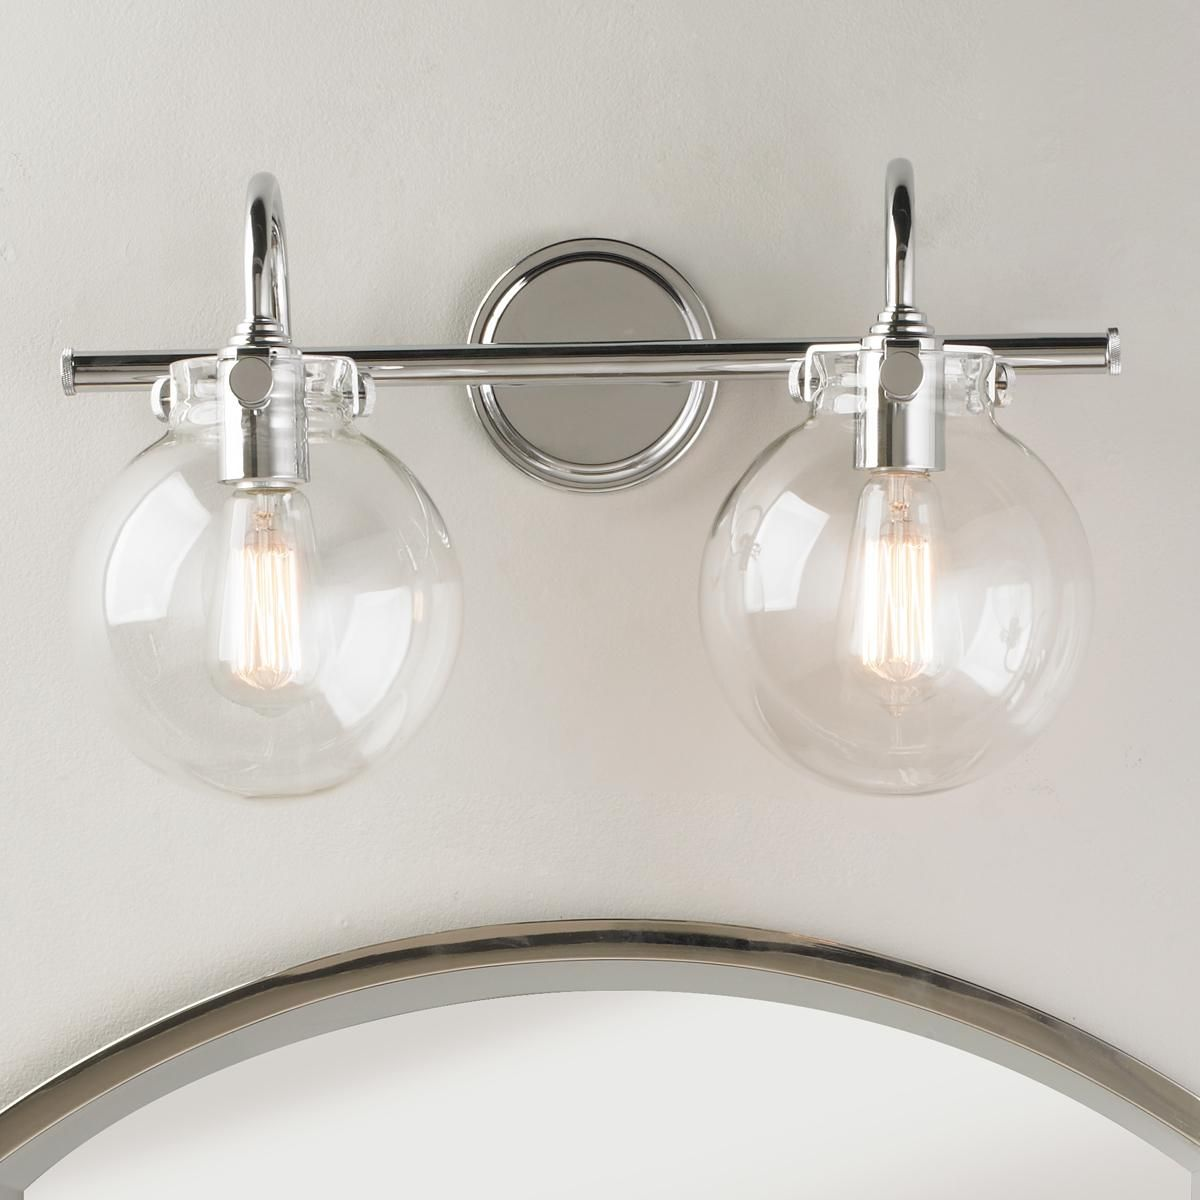 Retro glass globe bath light 2 light bath light globe for Contemporary bathroom vanity lighting